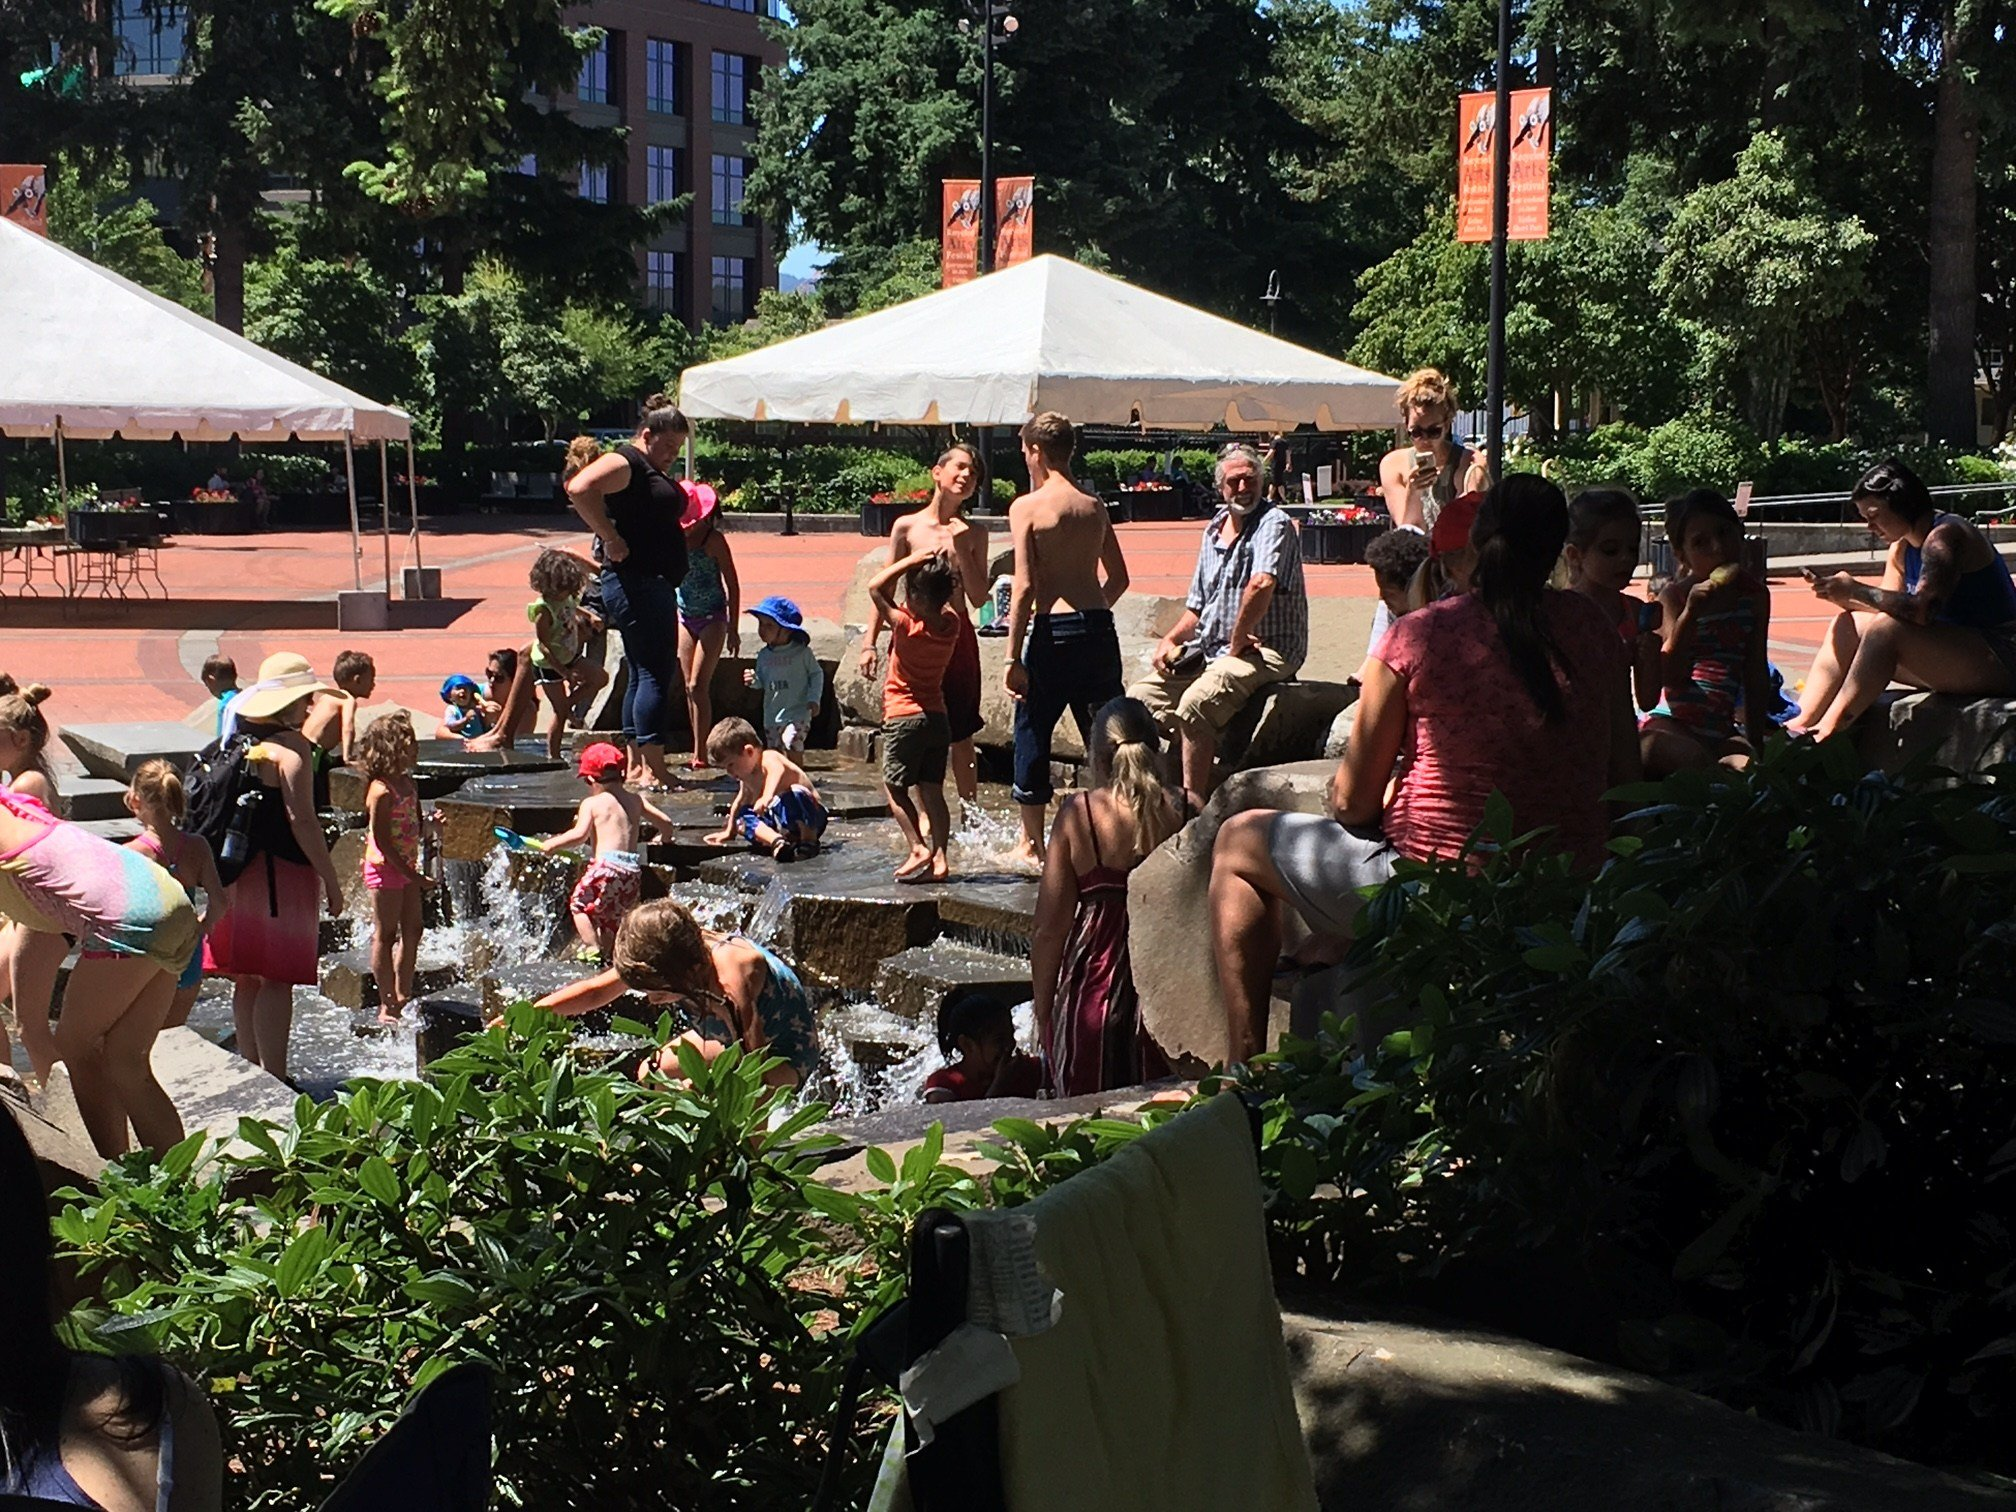 People cooling off in the fountain at Vancouver's Esther Short Park Friday.